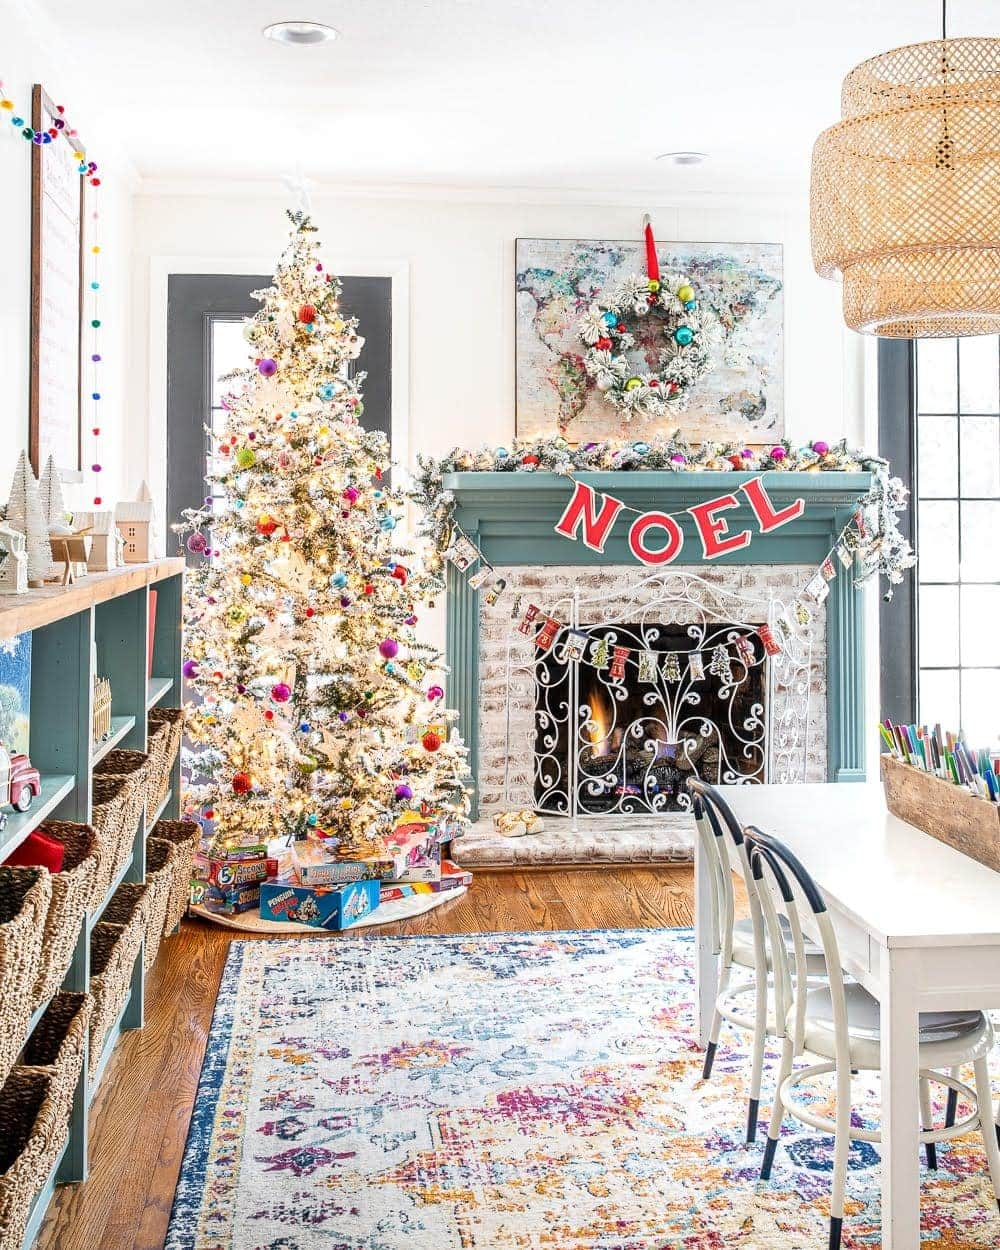 Colorful Christmas Playroom | 4 Christmas decorating tricks for hanging garlands, wreaths, banners, art, lights, and more without damaging furniture or walls.